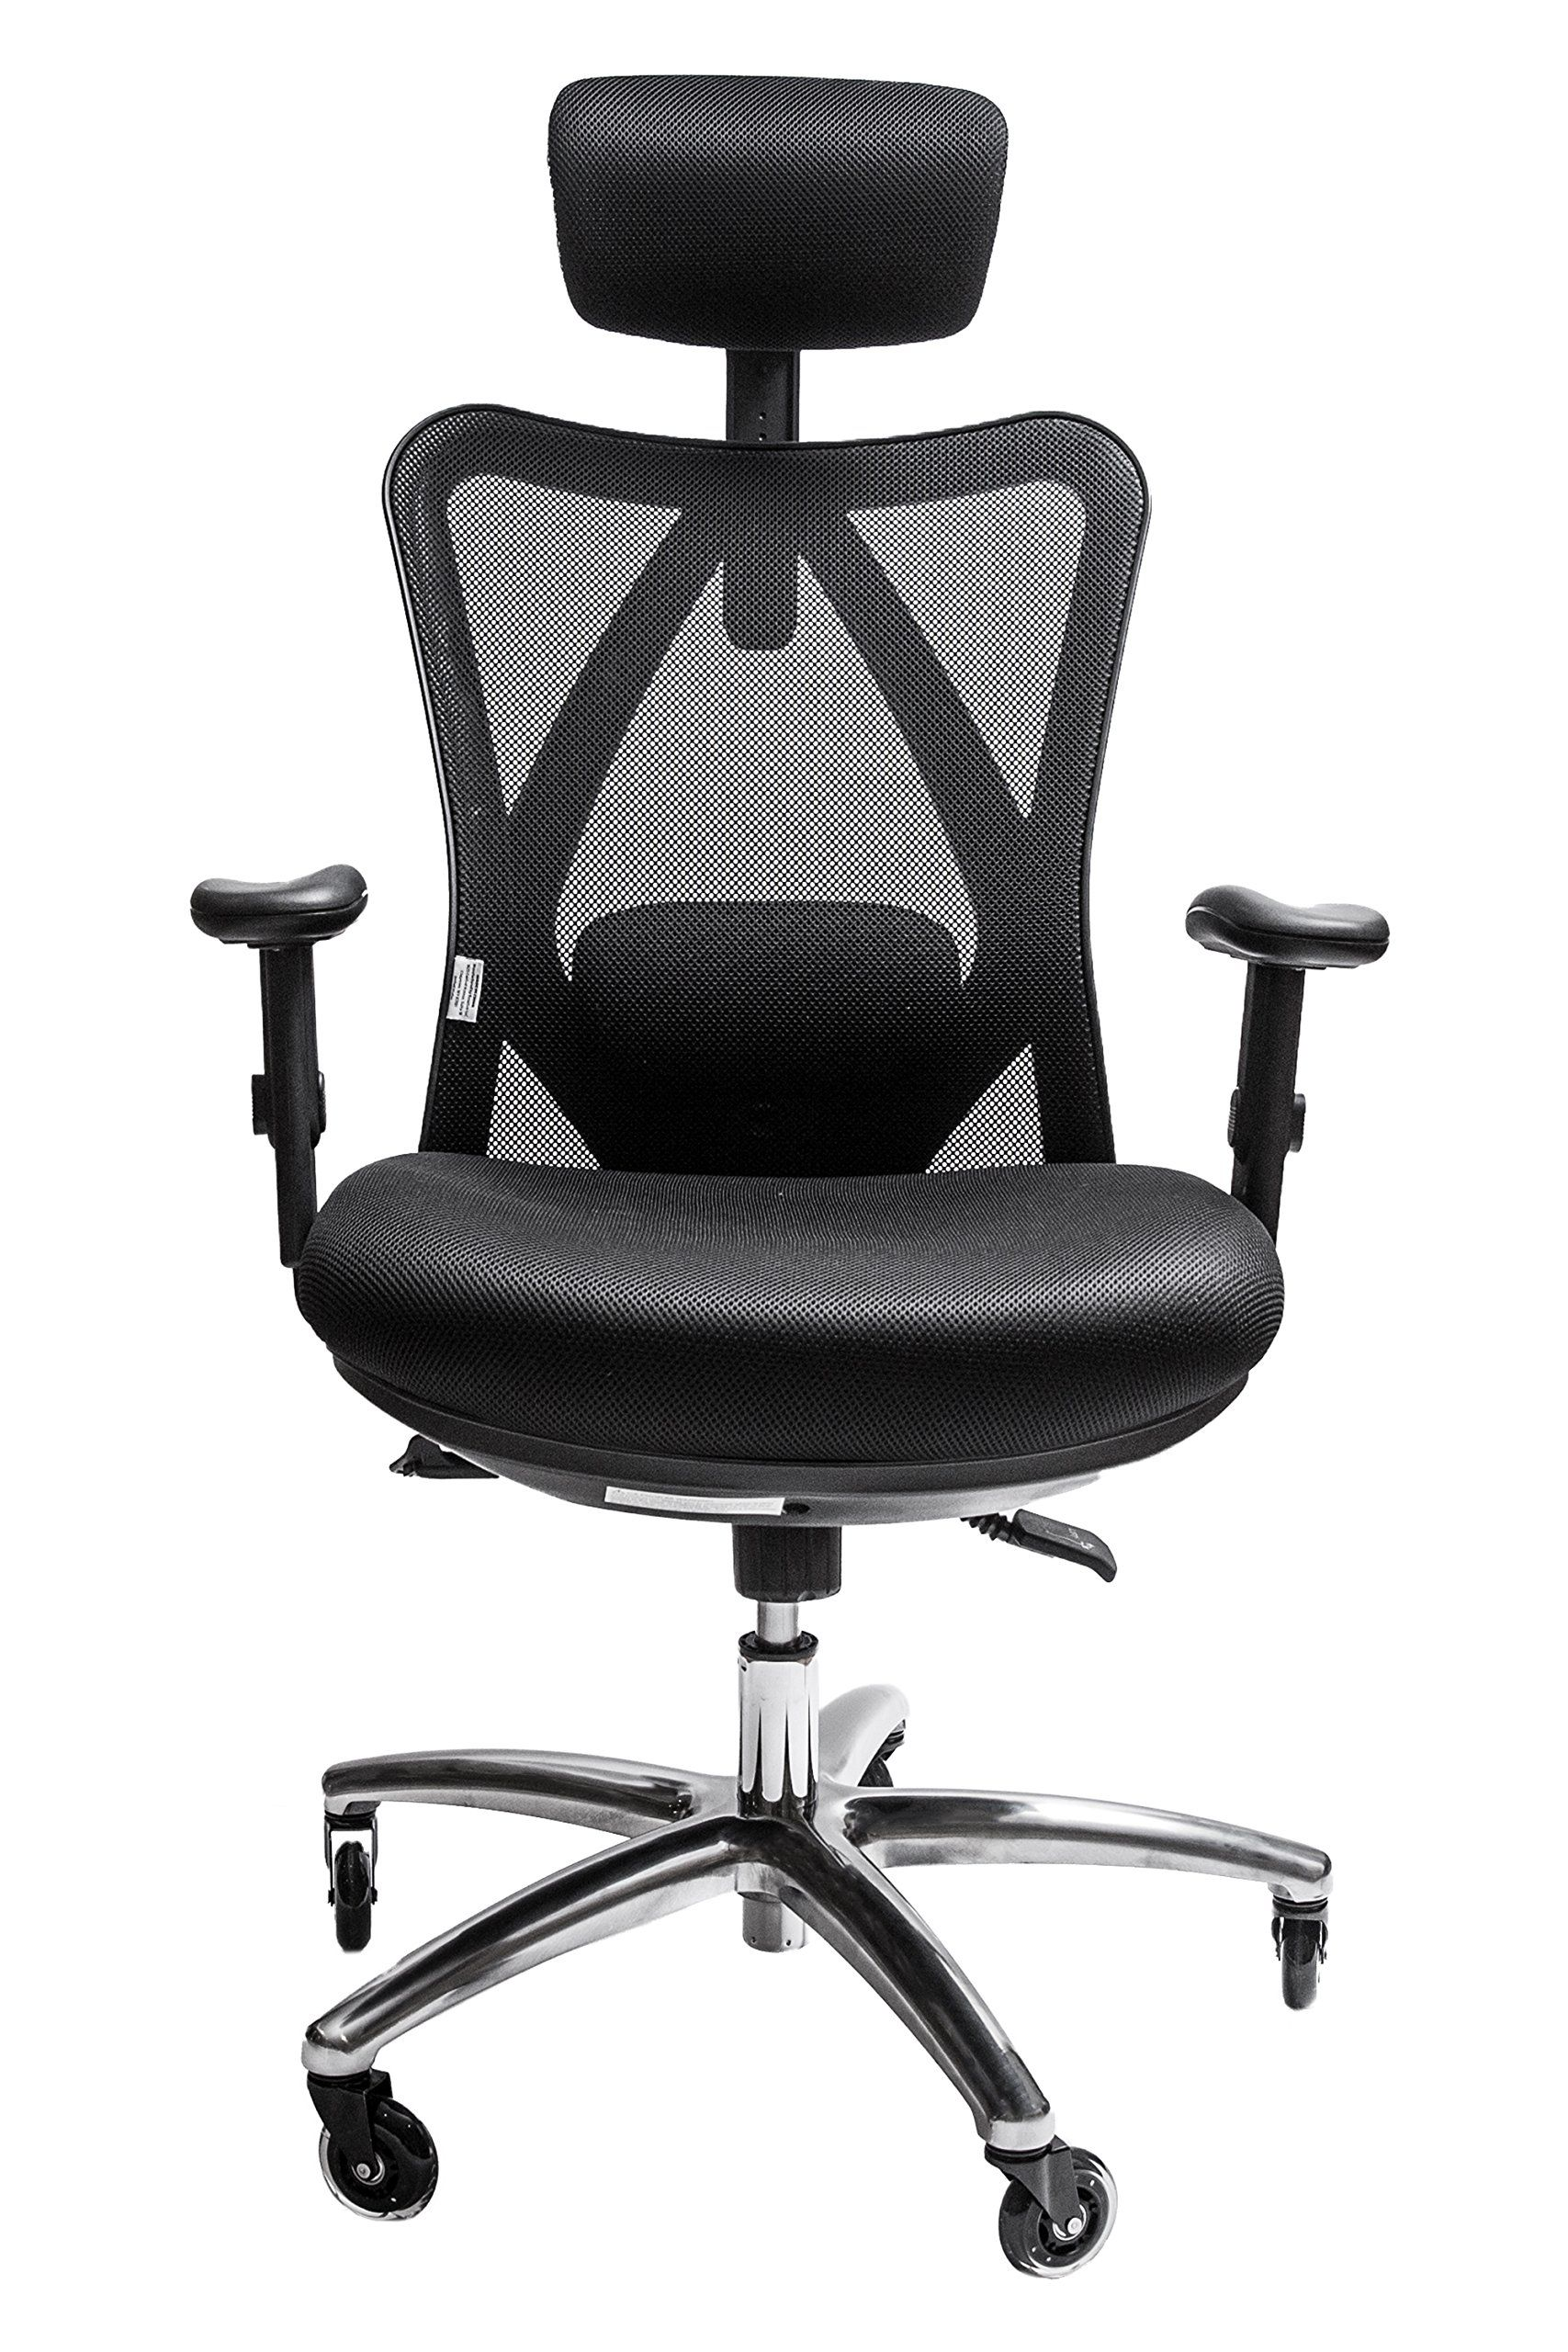 Office Chair Rollerblade Wheels Mlg Gaming Sleekform Ergonomic Adjustable With Lumbar Support And High Back Breathable Mesh Thick Seat Cushion